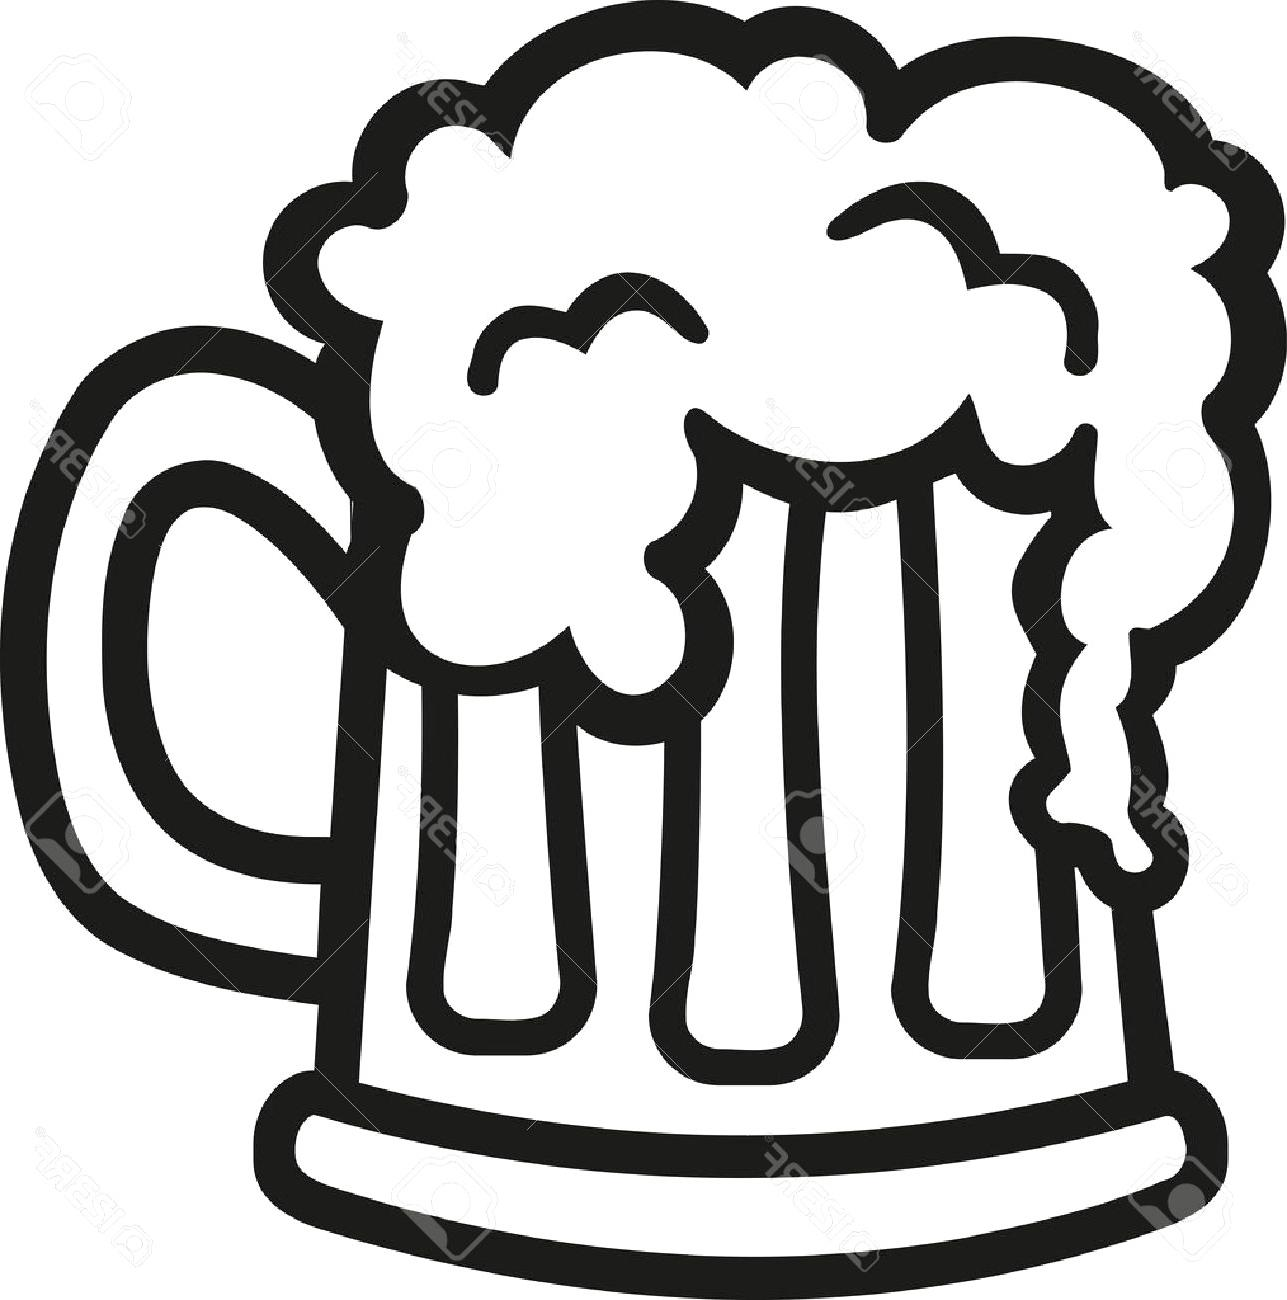 Top Beer Glass Clip Art Black And White Cdr » Free Vector.